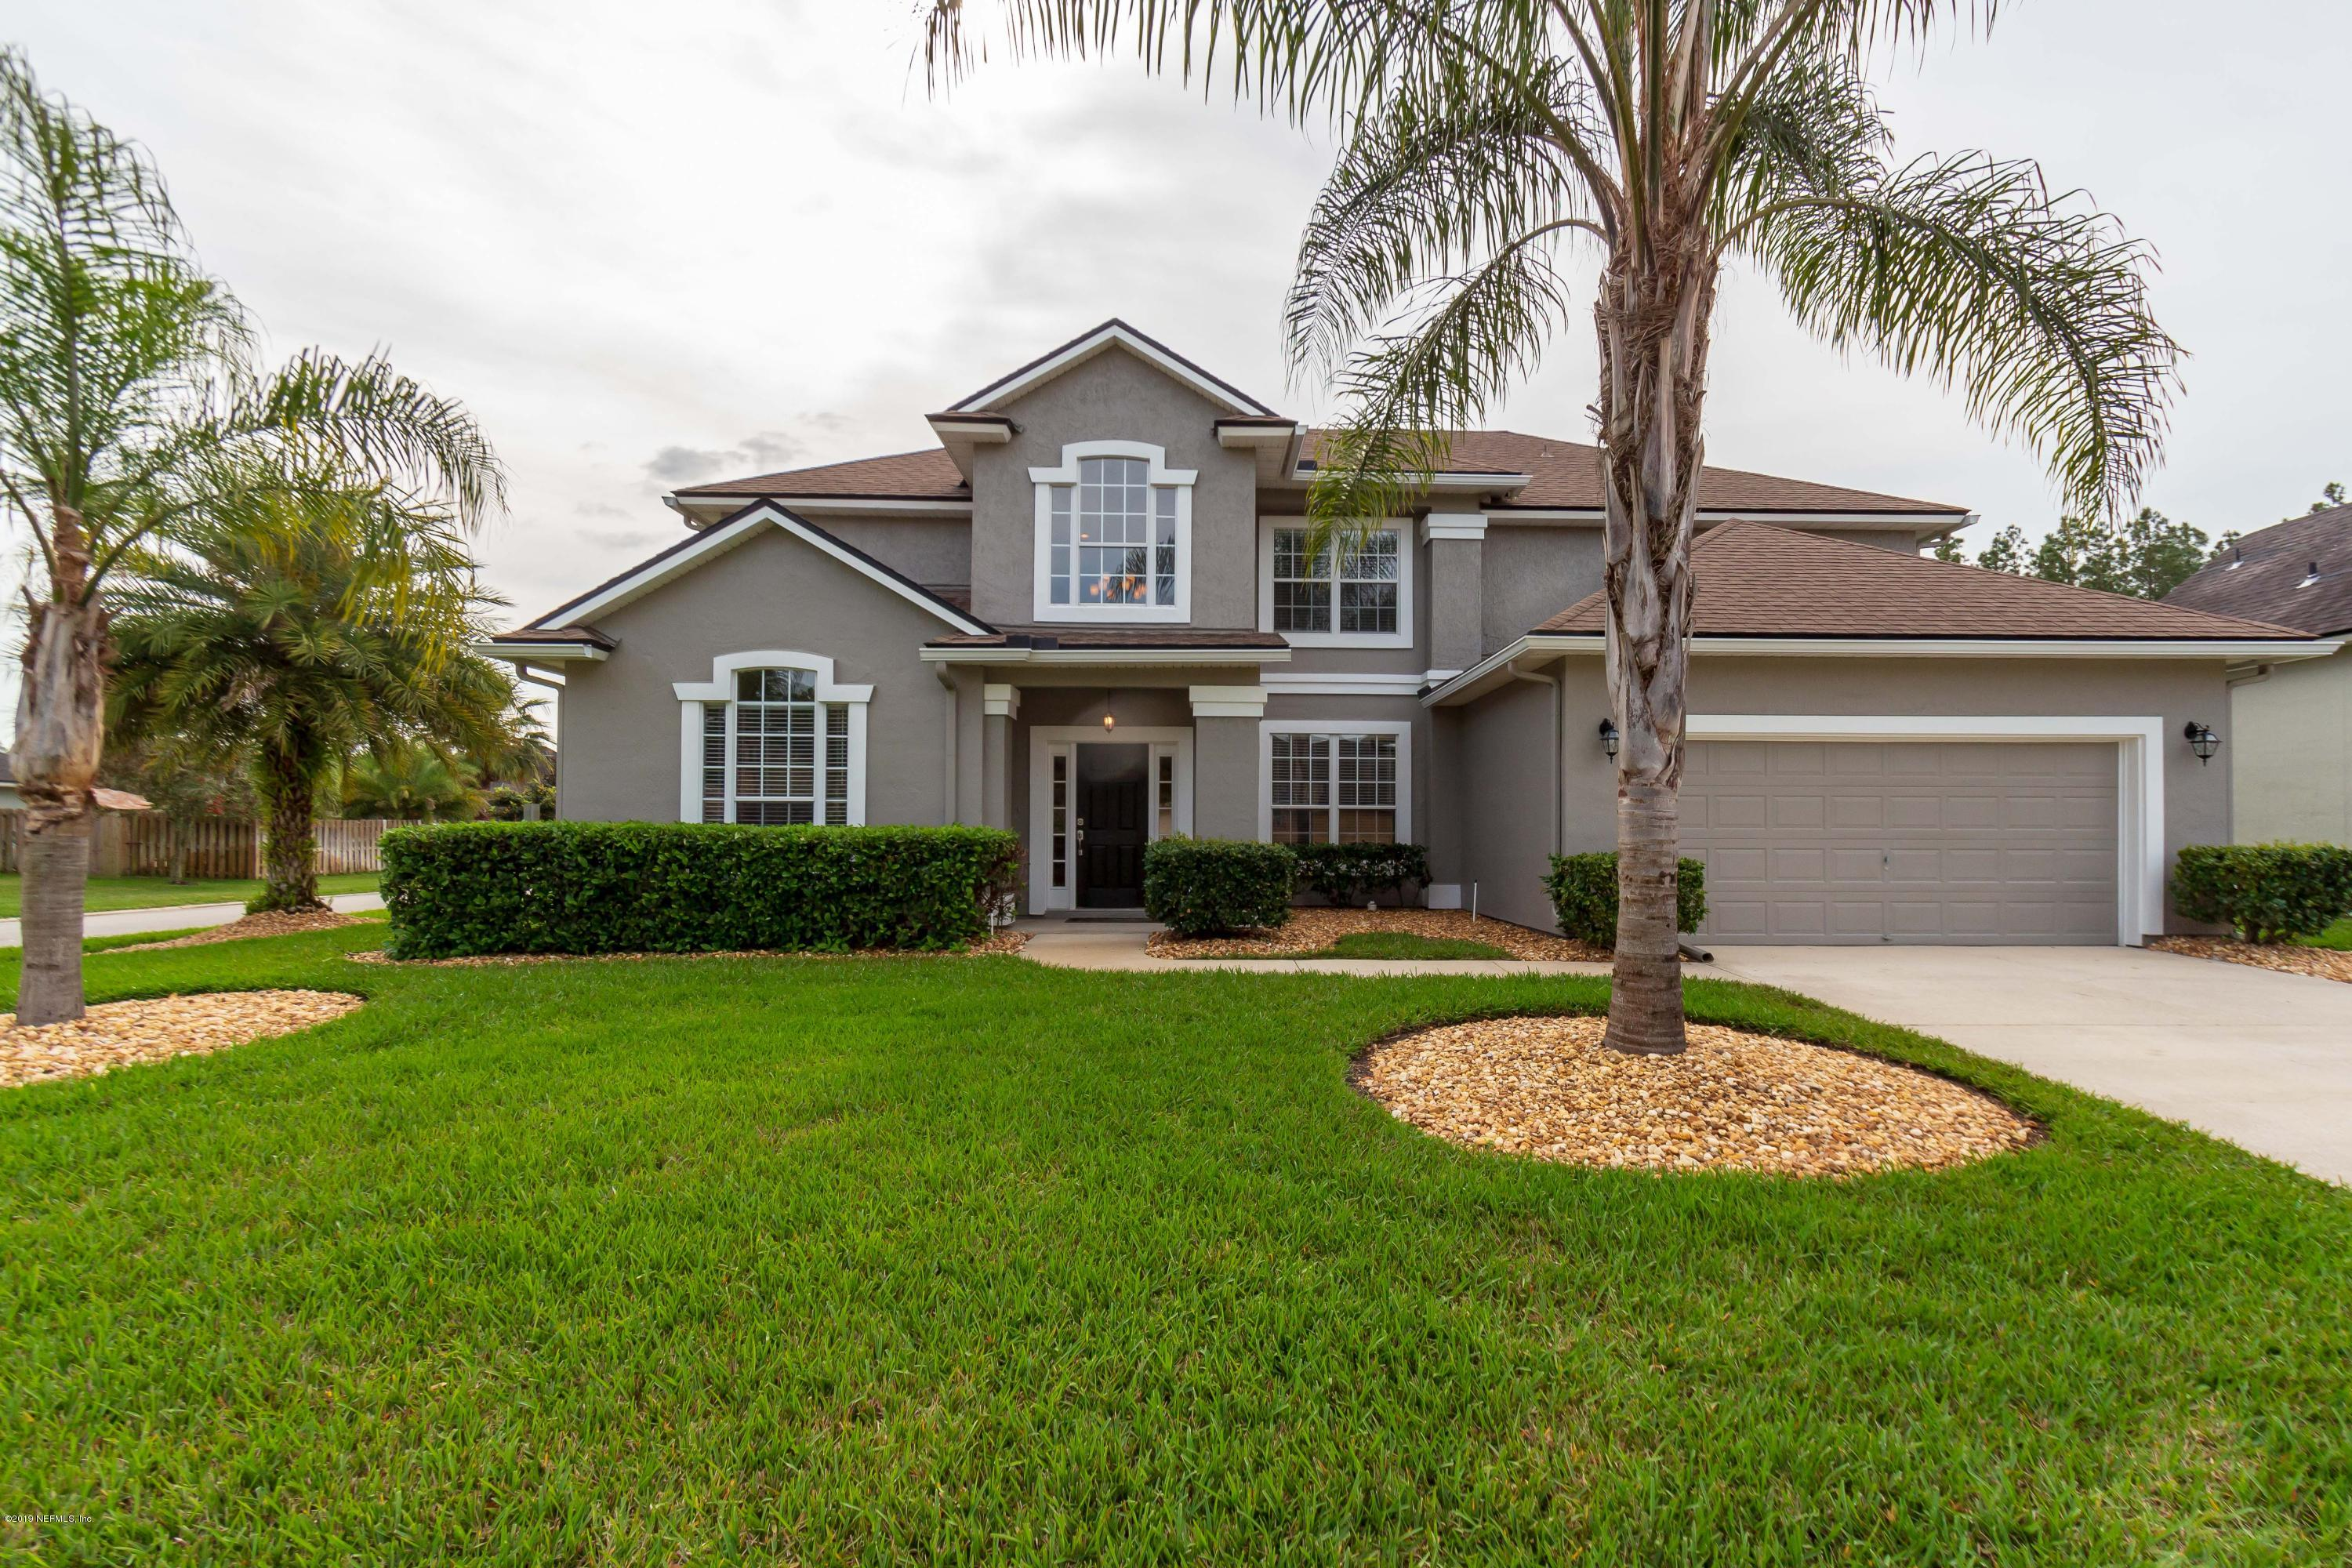 2065  JIMMY LN, Julington Creek in ST. JOHNS County, FL 32259 Home for Sale